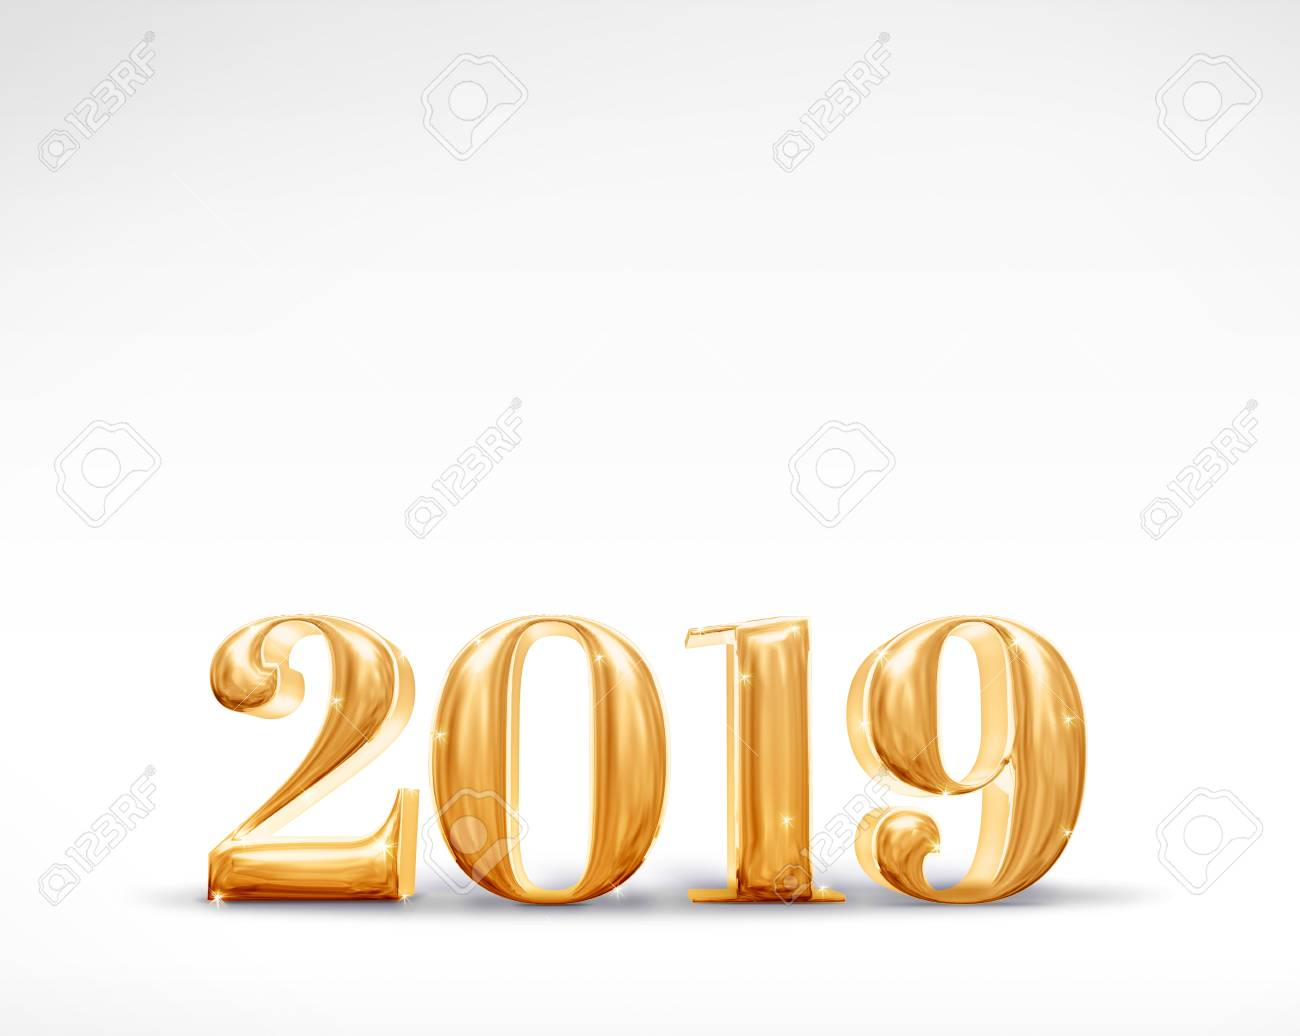 2019 happy new year golden number 3d rendering on white studio roomholiday